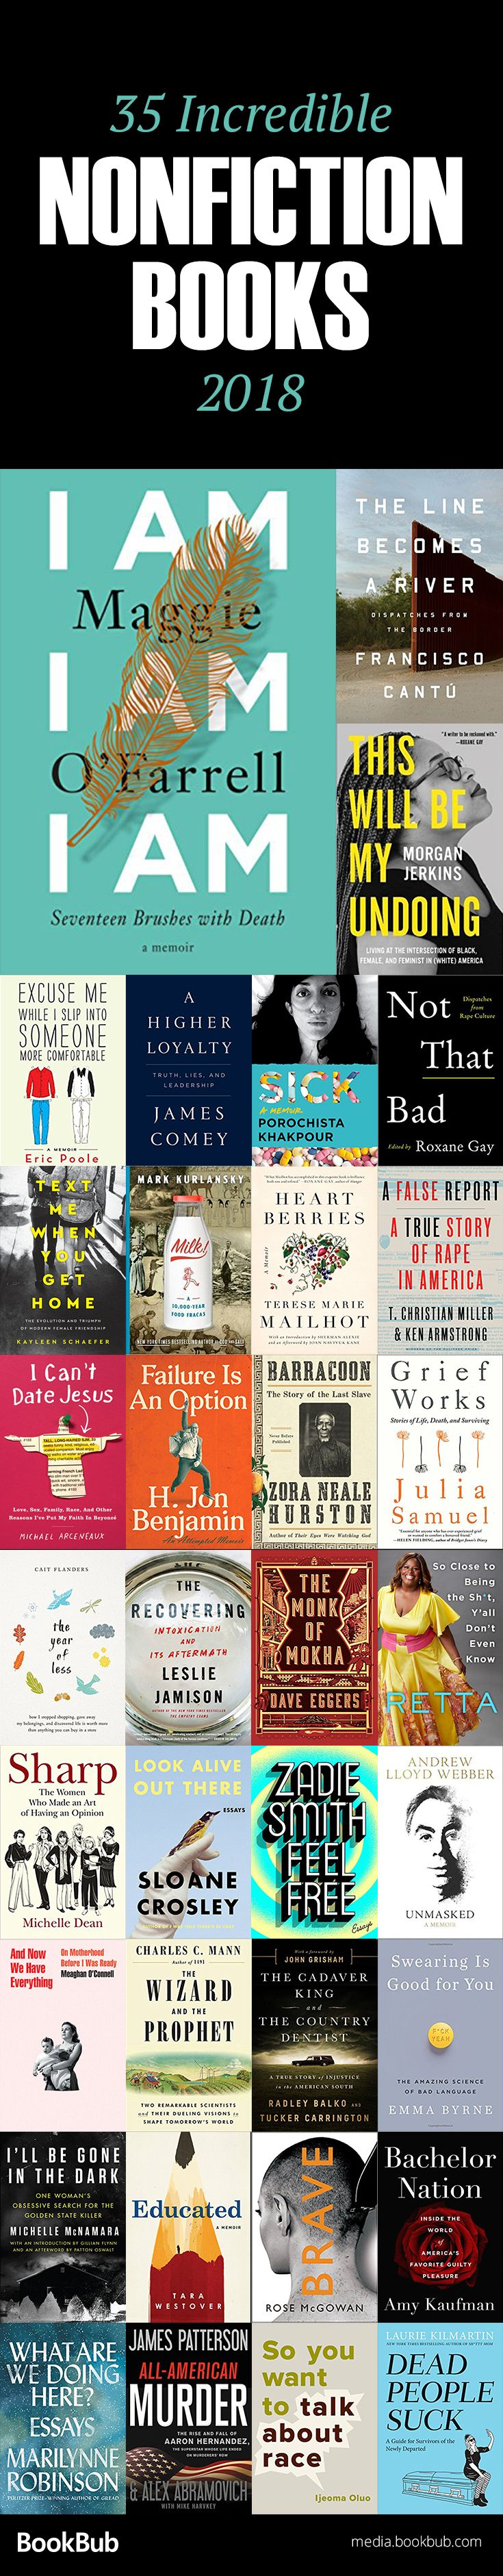 Check out our list of great nonfiction books, featuring self help books for women and for men, inspirational books, books written about true stories, nonfiction books for teens, and more.